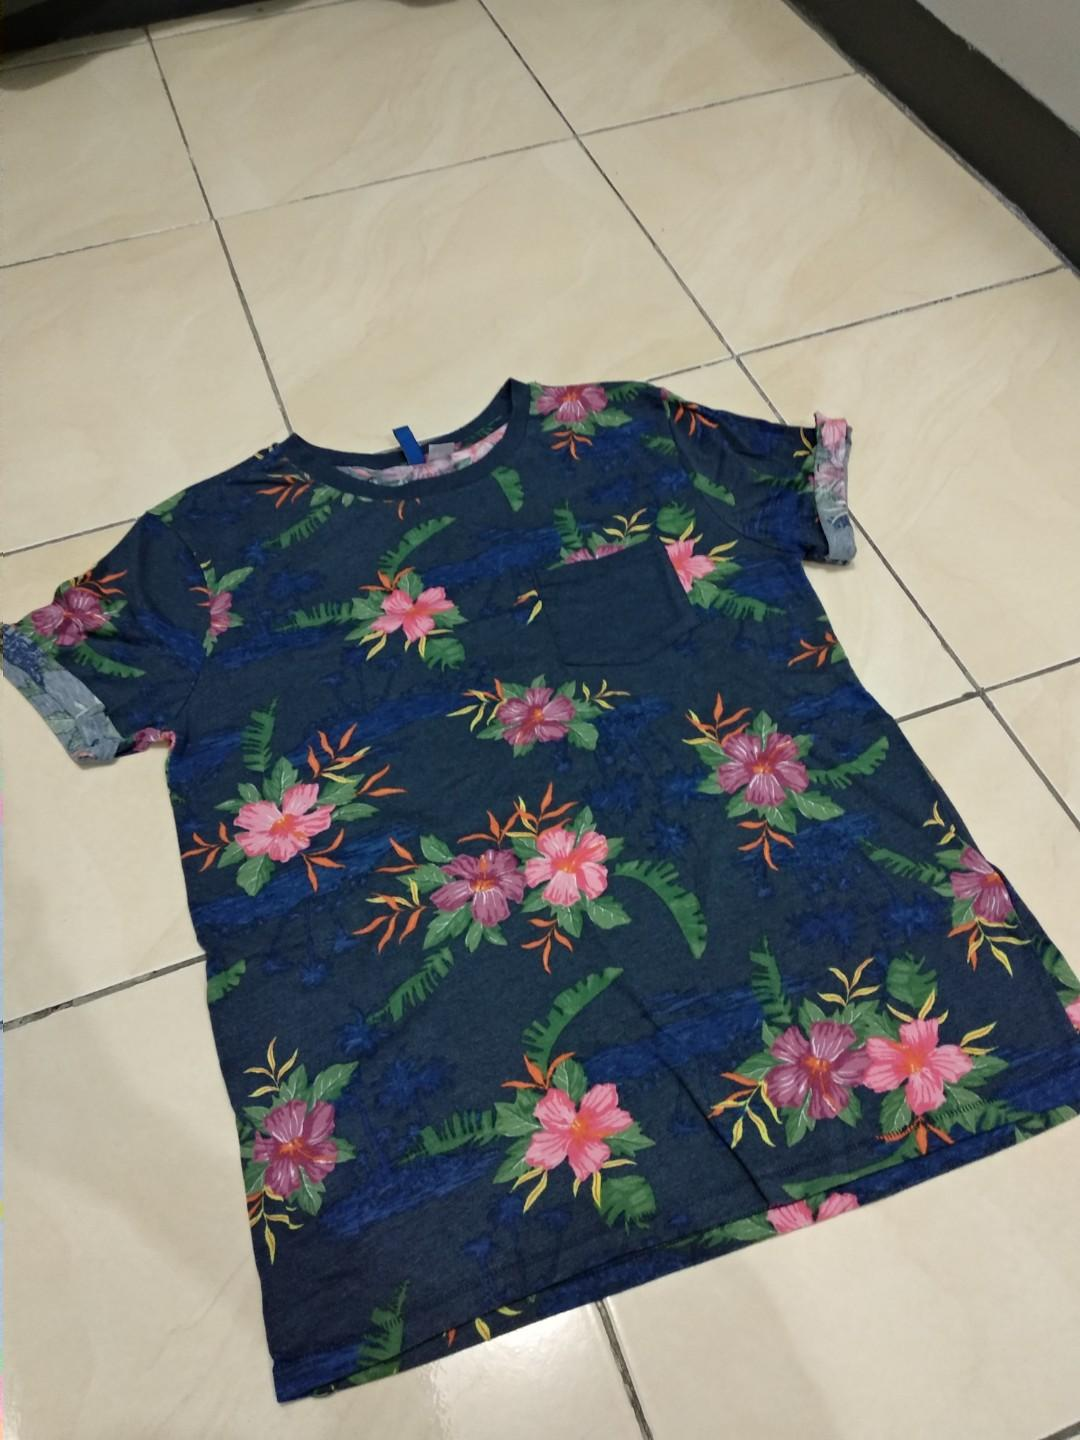 T-Shirt Divide by H&M (Original Made in Turkey, Size M)